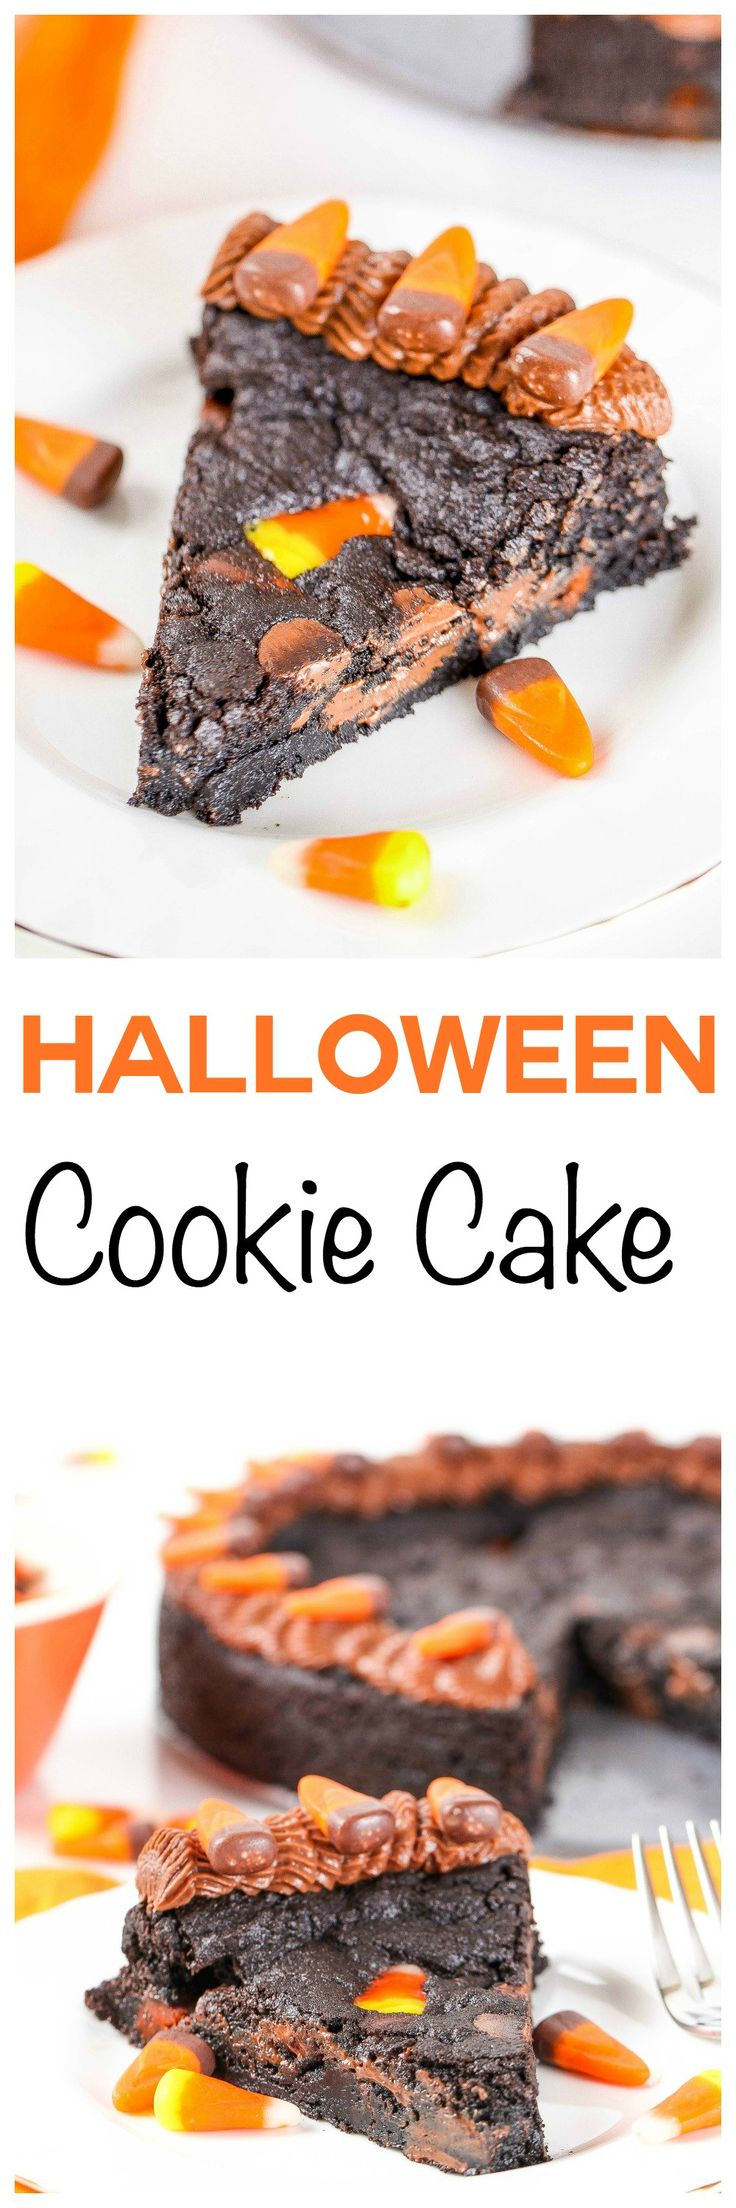 Halloween Chocolate Chip Cookie Cake: Soft and chewy dark chocolate chip cookie cake jam packed full of chocolate chips and candy corn. The perfect colors for Halloween parties!